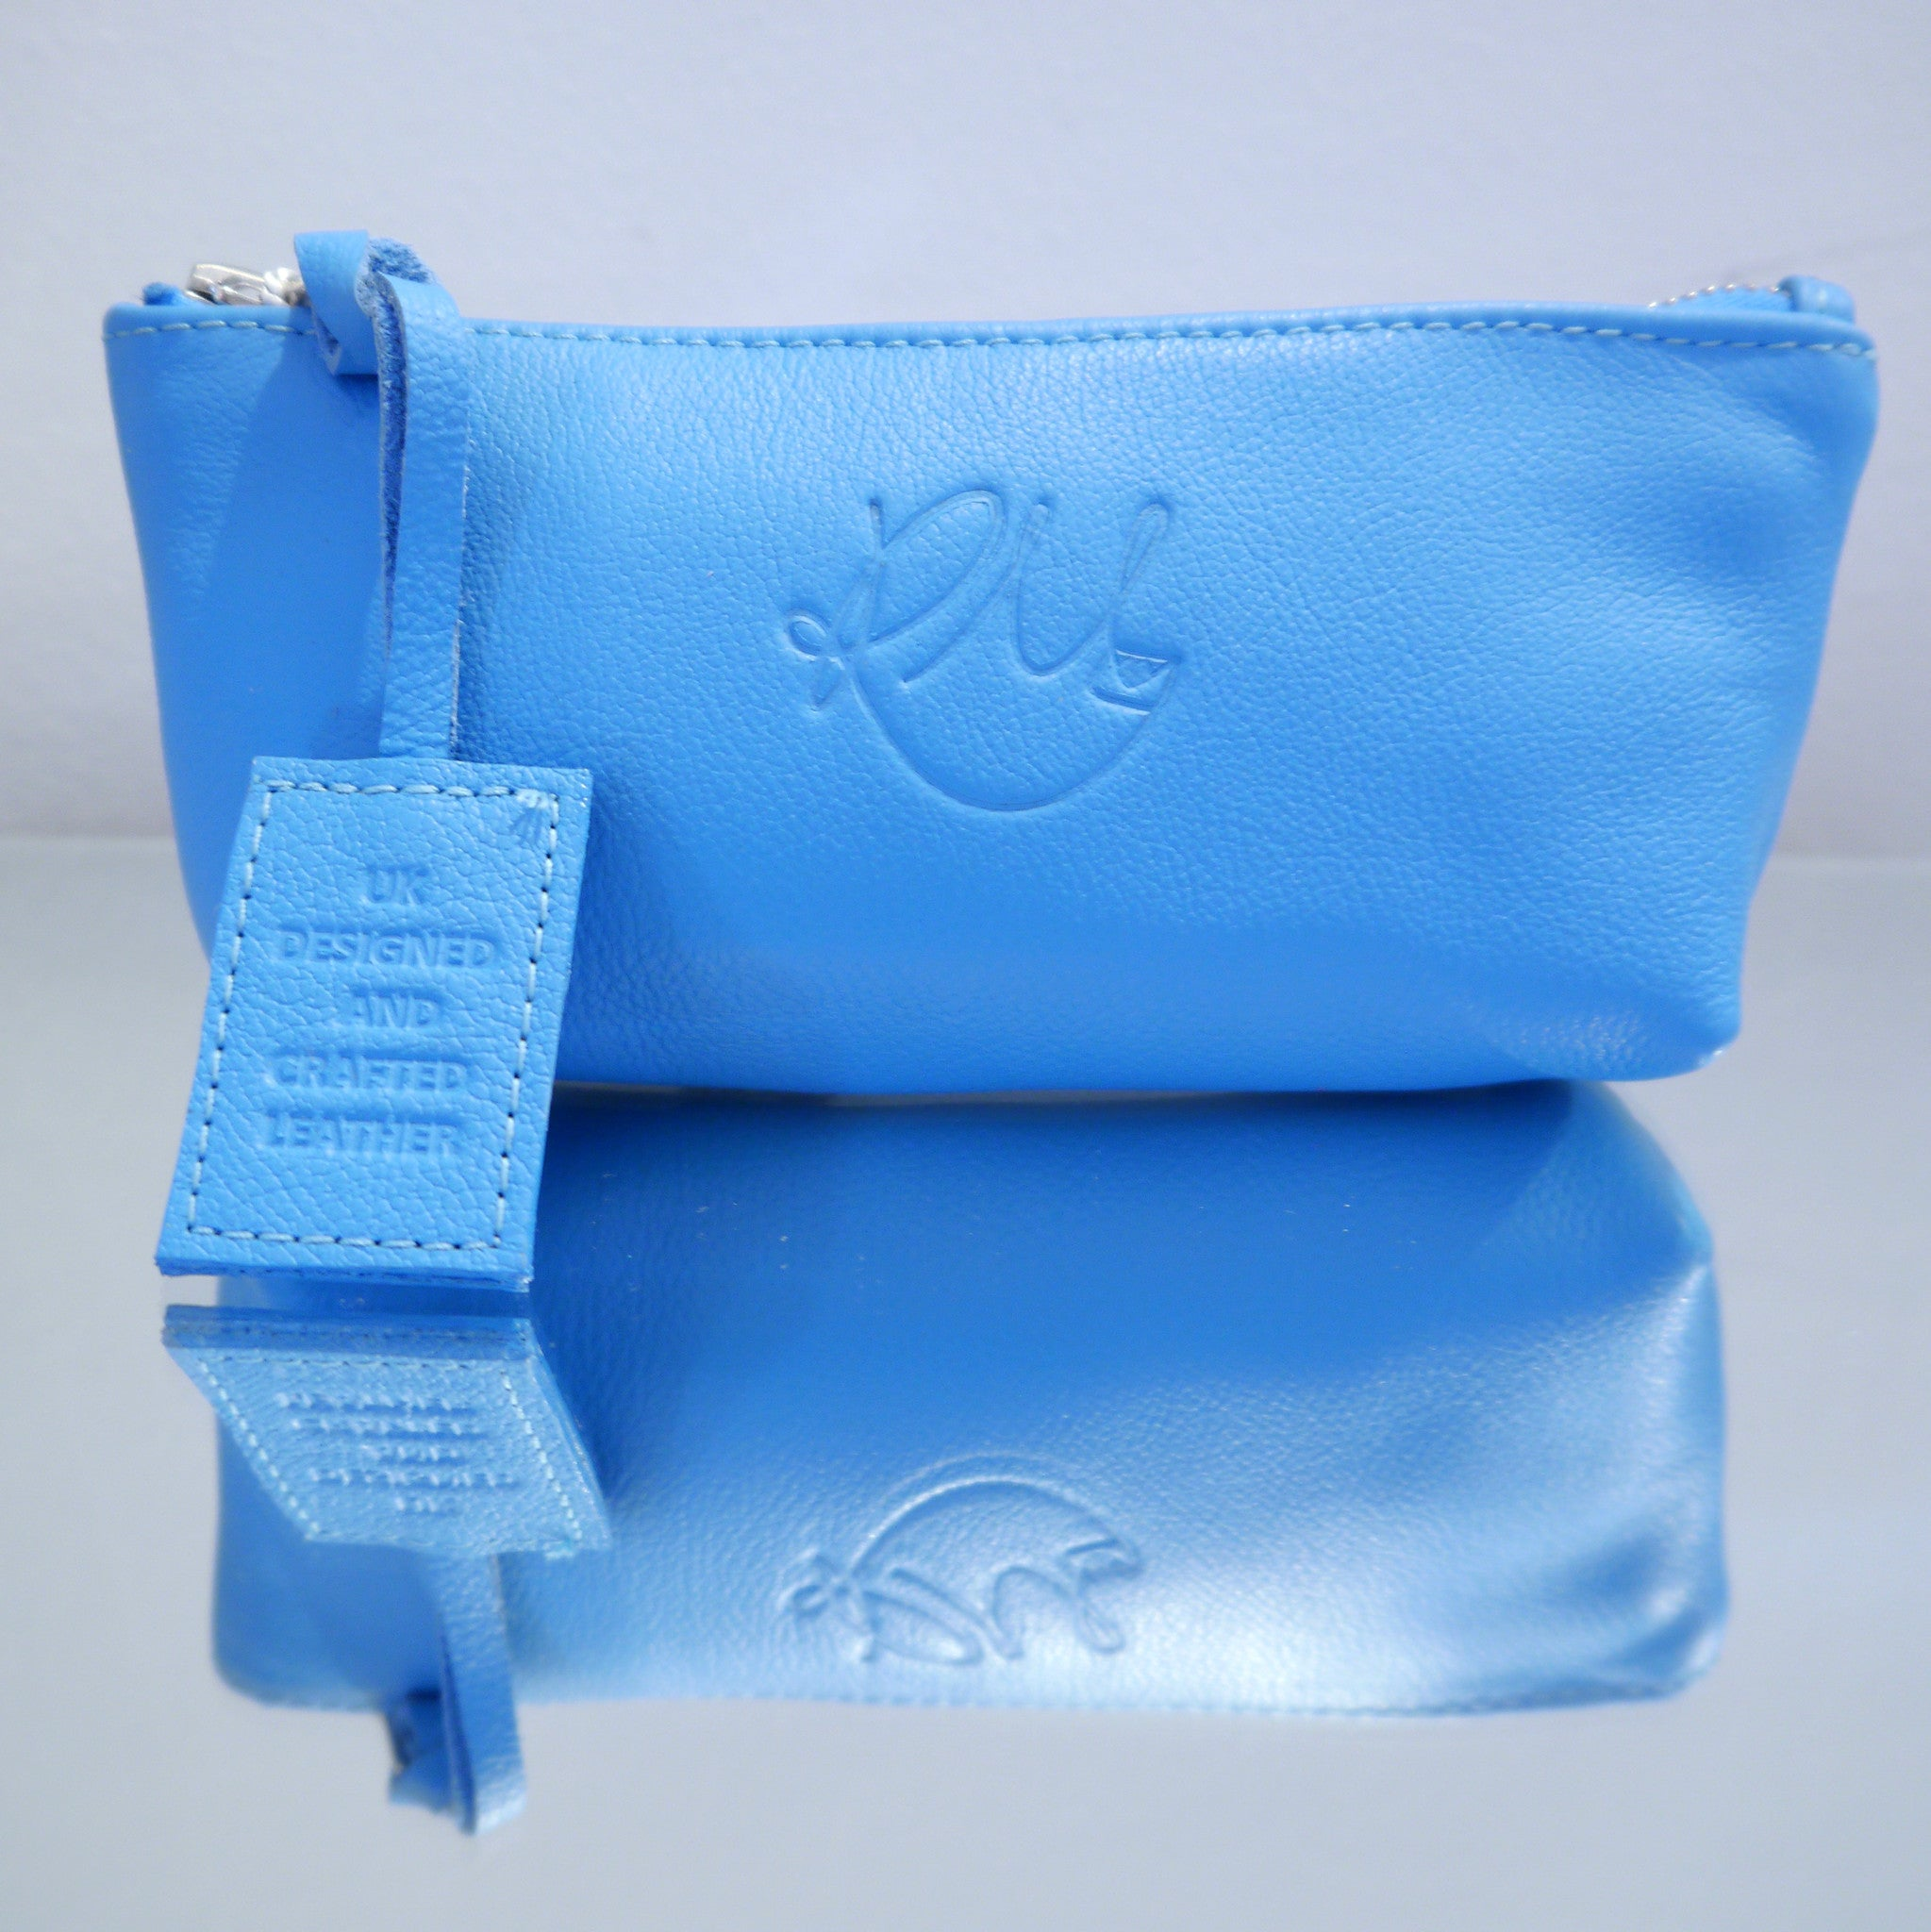 S/S15 Poppy Leather Make Up Bag in Powder Blue - Small